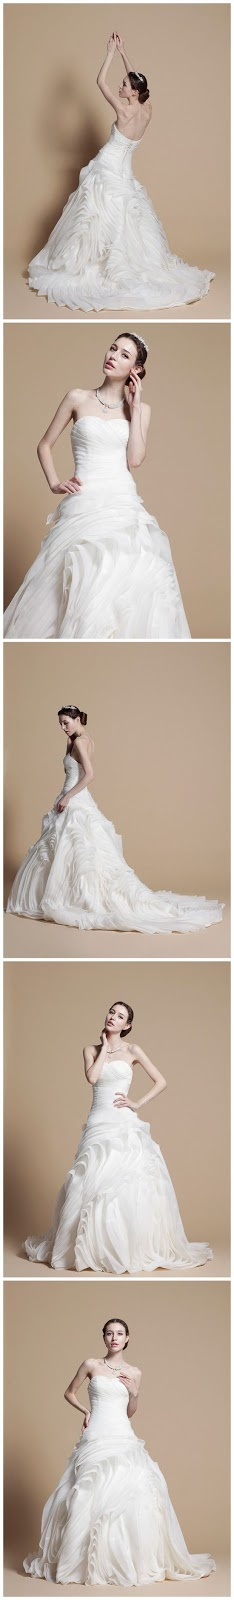 Ladies wedding dresses and photo poses